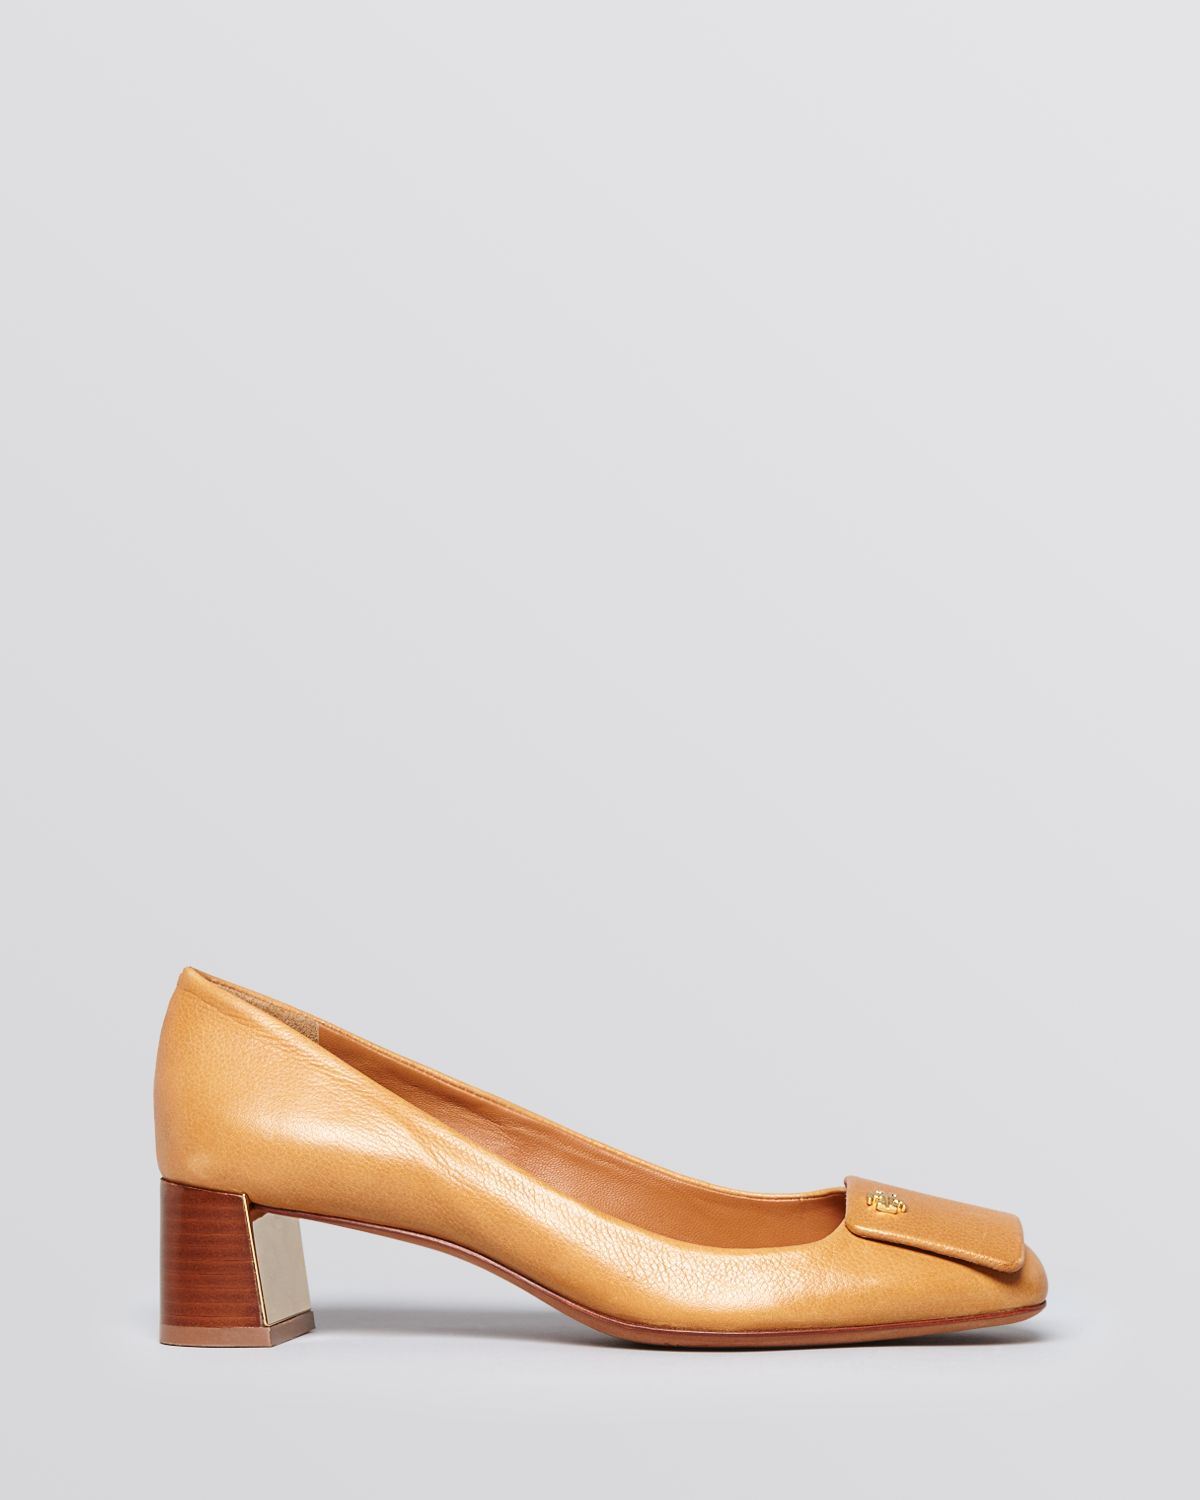 Tory Burch Canvas Square-Toe Pumps extremely sale online cheap under $60 the cheapest cheap online free shipping fast delivery JFRzPaFfAS